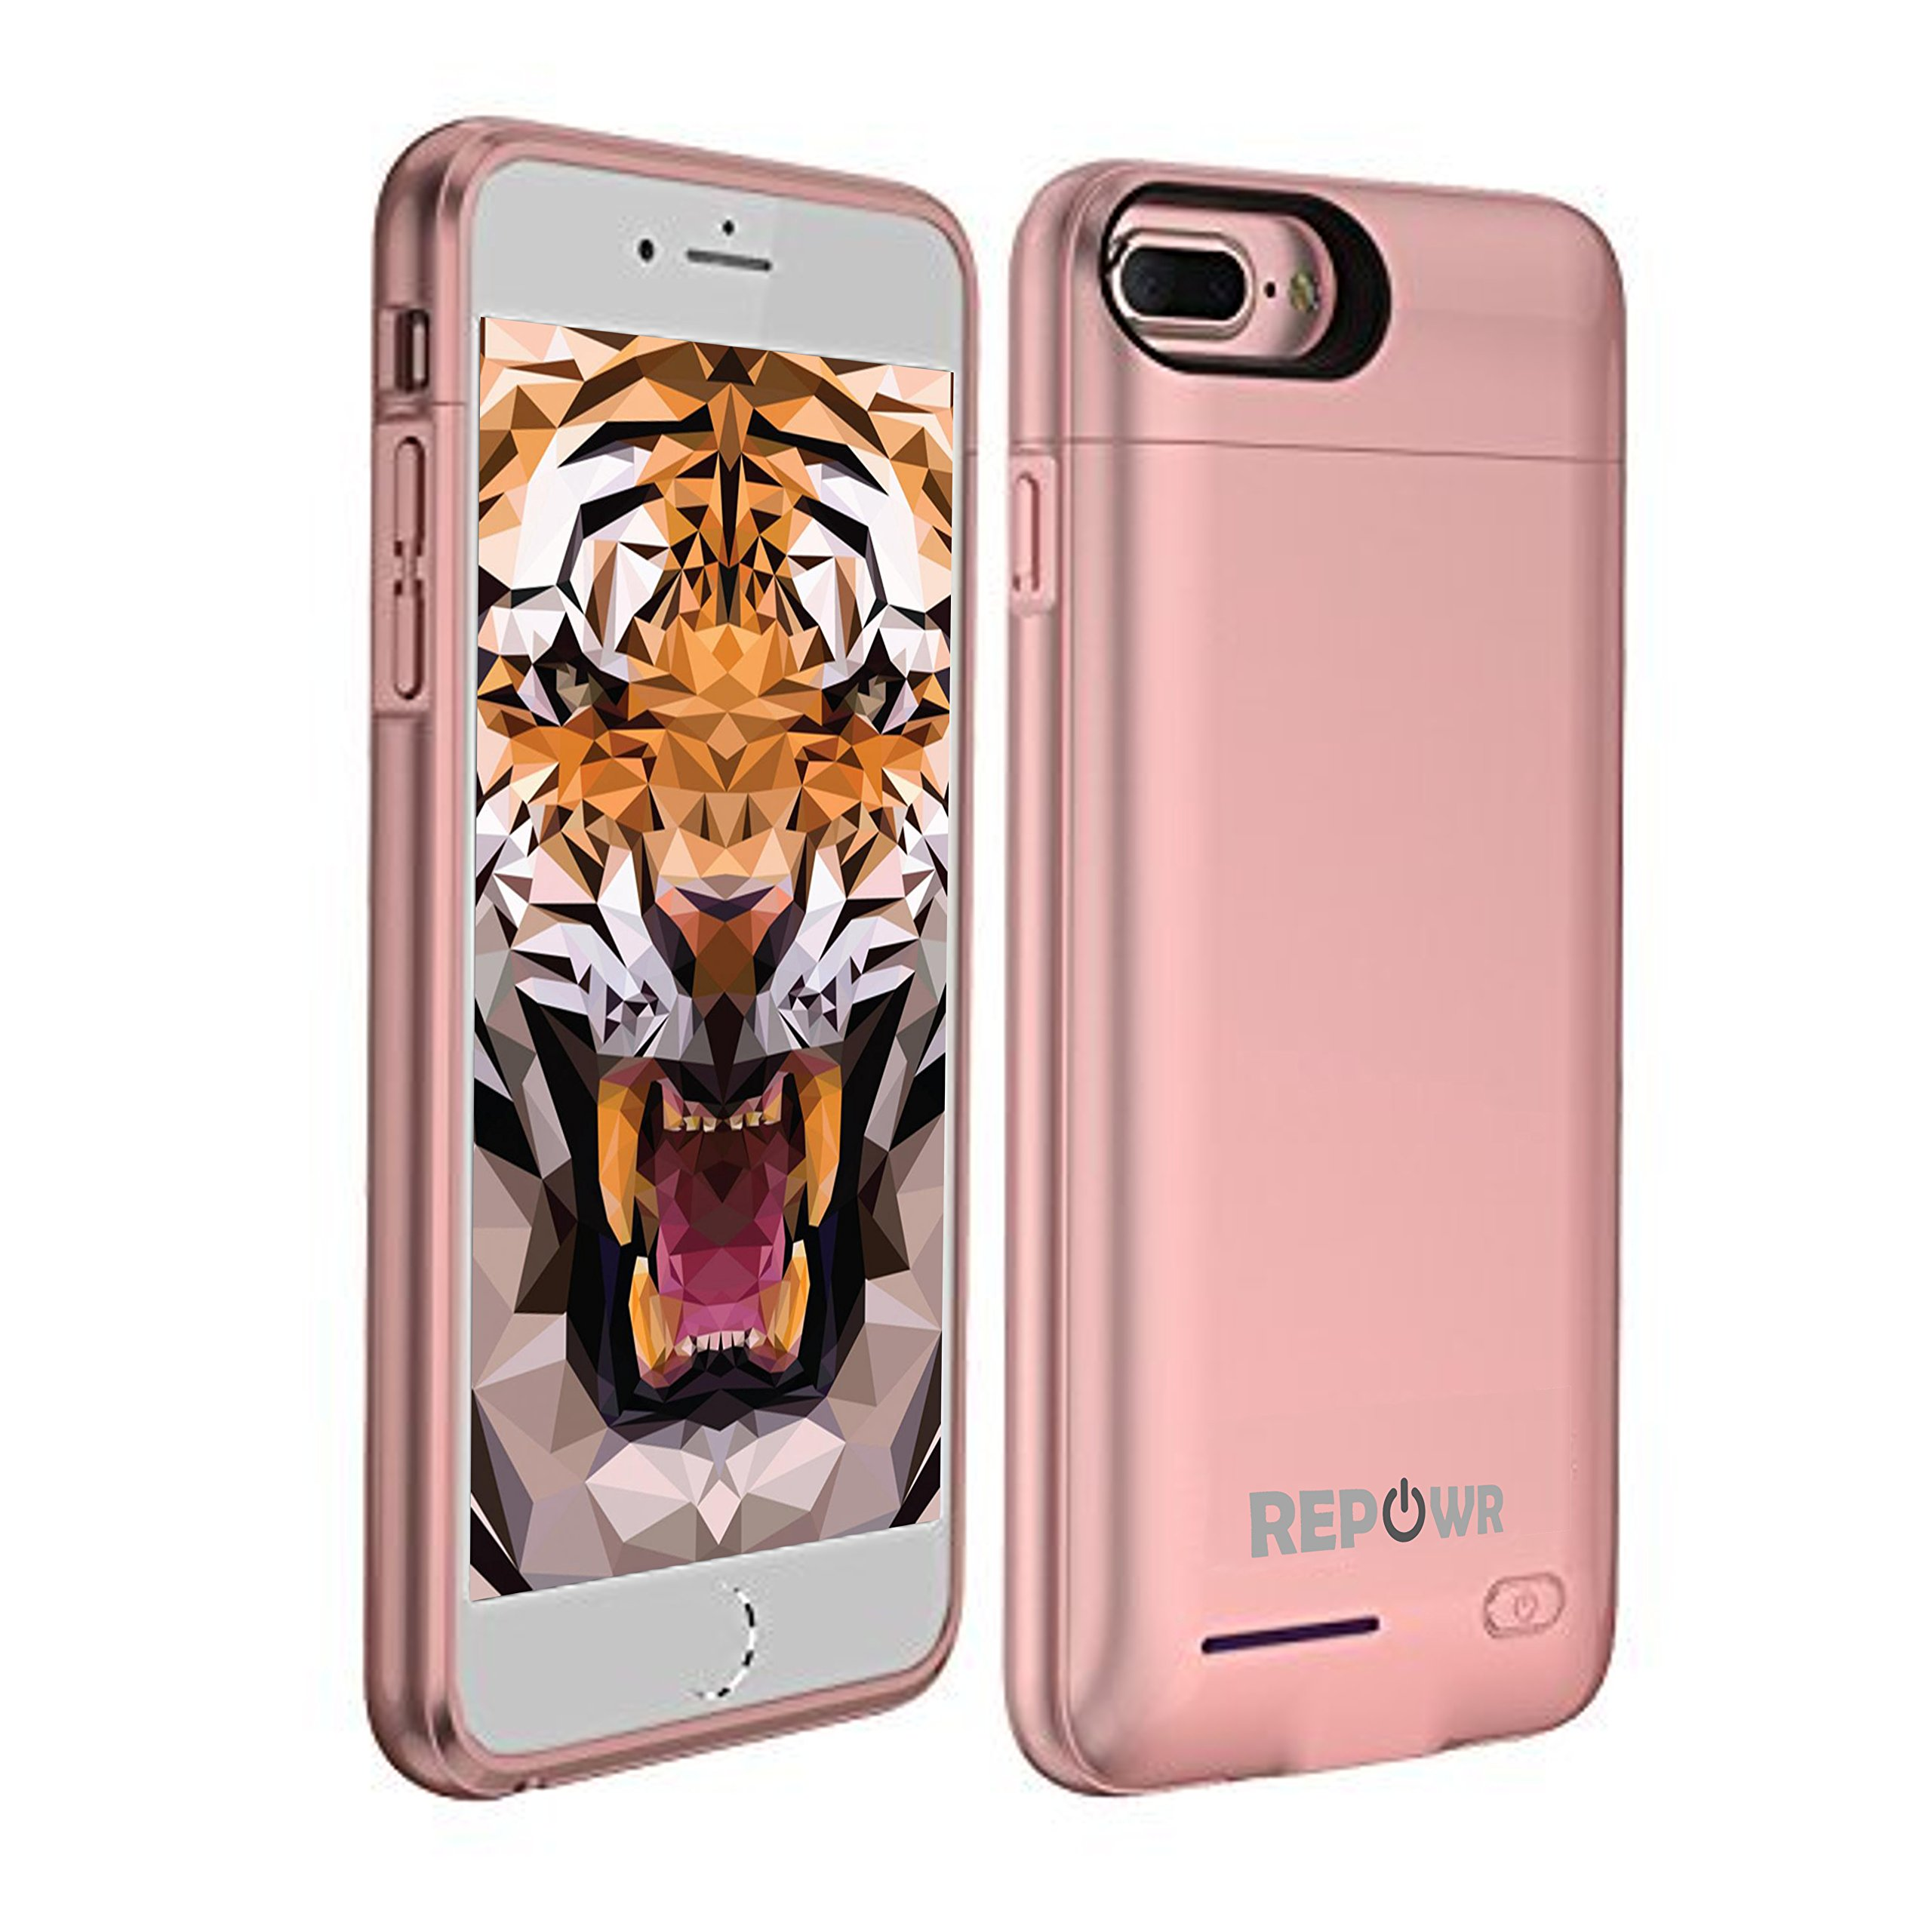 REPOWR Brand Battery Charger Case Compatible with Apple iPhone 8 Plus / 7 Plus / 6s Plus / 6 Plus - 4200mAh - Magnetic Protective Case - Portable + Slim with External Battery Rechargeable (Rose Gold)